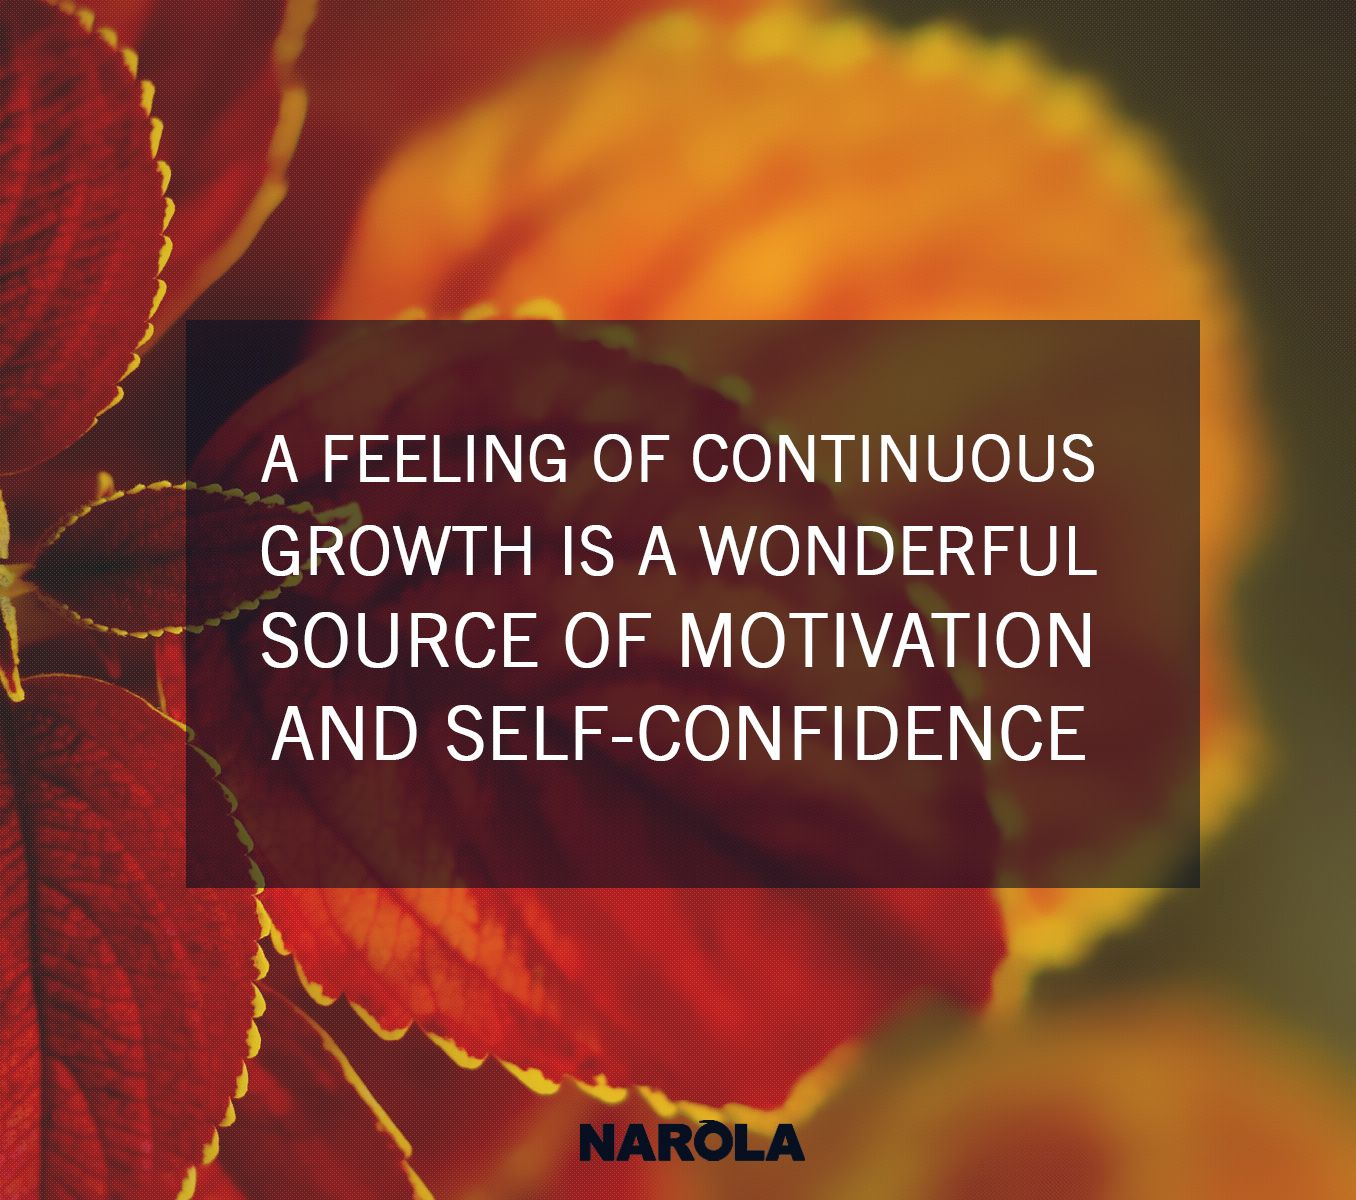 #motivation #selfconfidence #growth #motivationalquotes #braintracy #braintracyquotes #narola #quotes